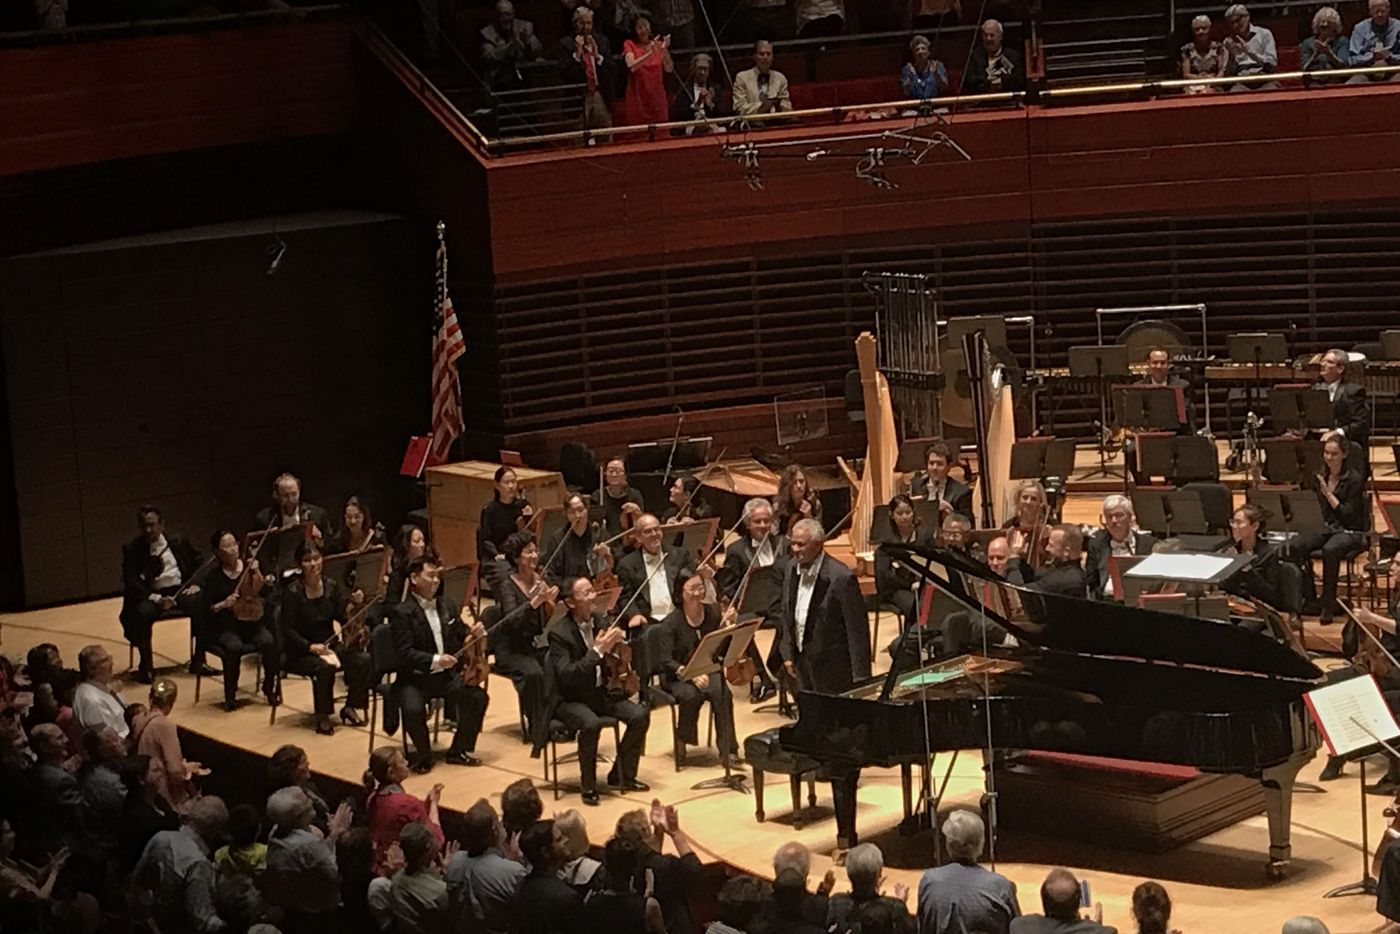 Philadelphia Orchestra and Met Opera come together synergistically